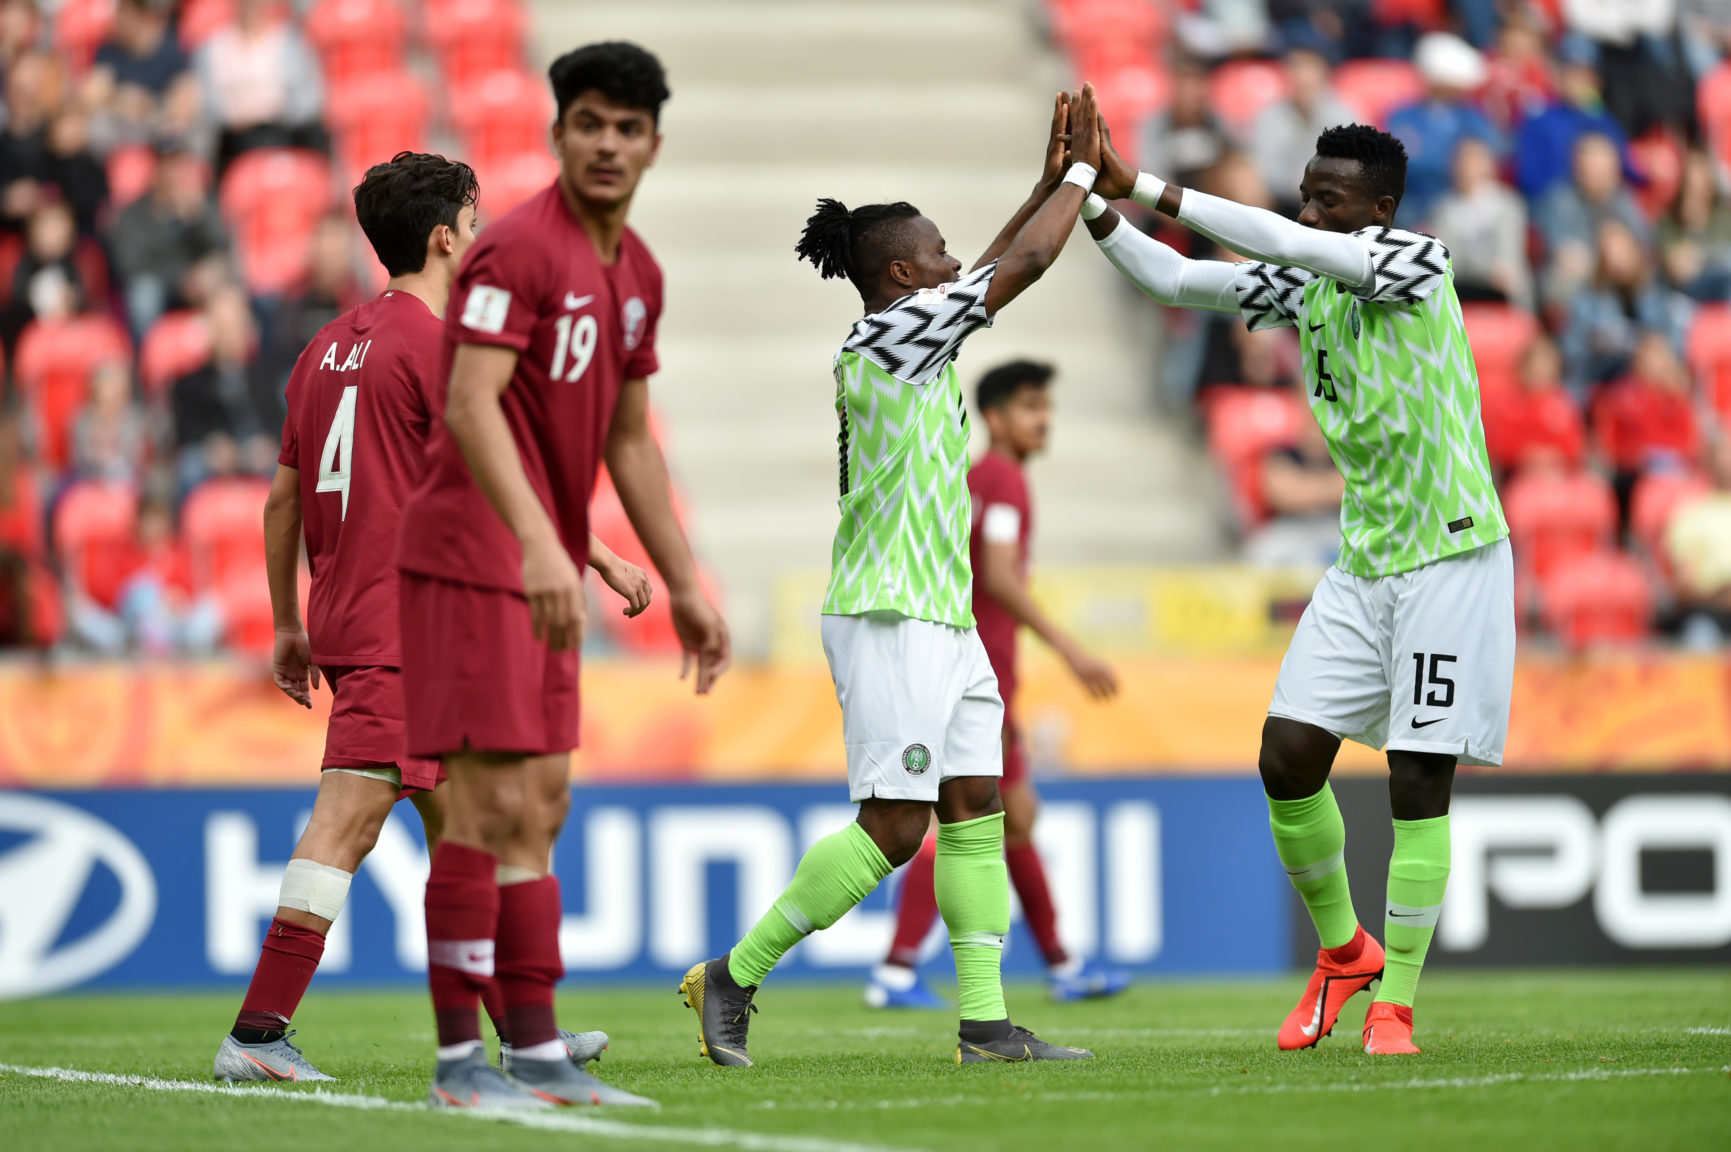 Flying Eagles whip Qatar 4-0 in U-20 World Cup thriller